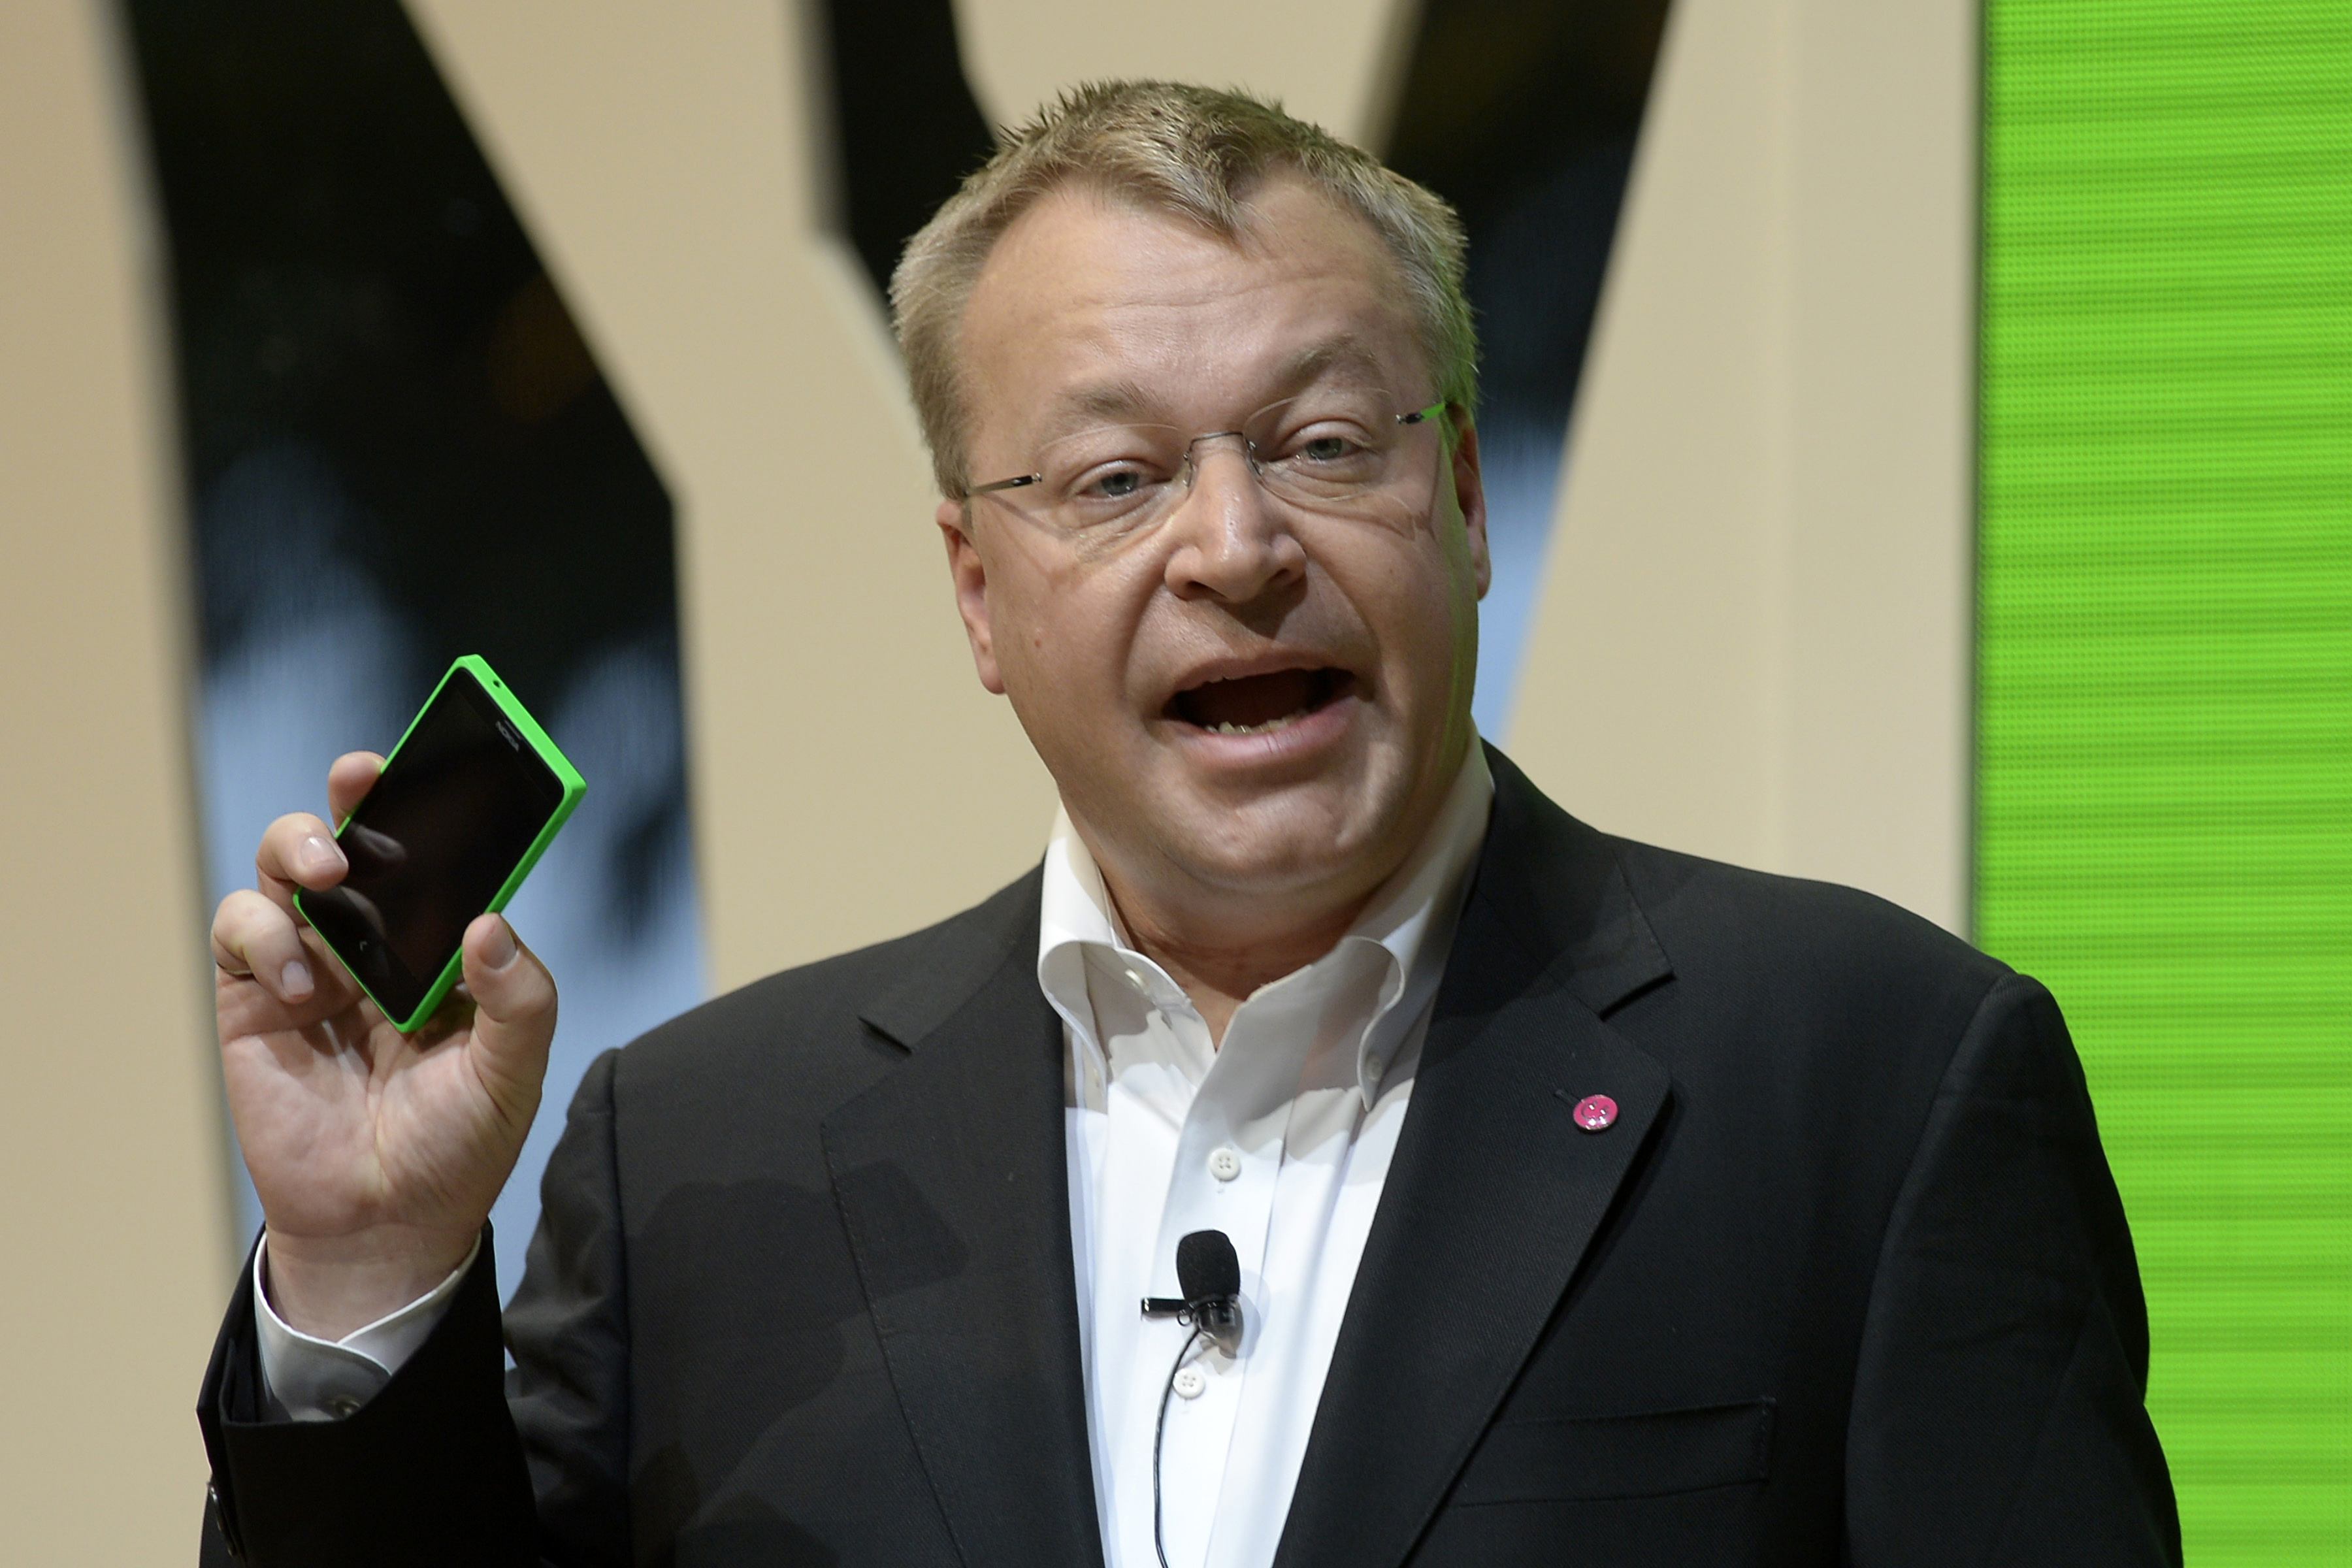 Microsoft is switching some of its Android-based Nokia X smartphones to Windows Phone - The Next Web